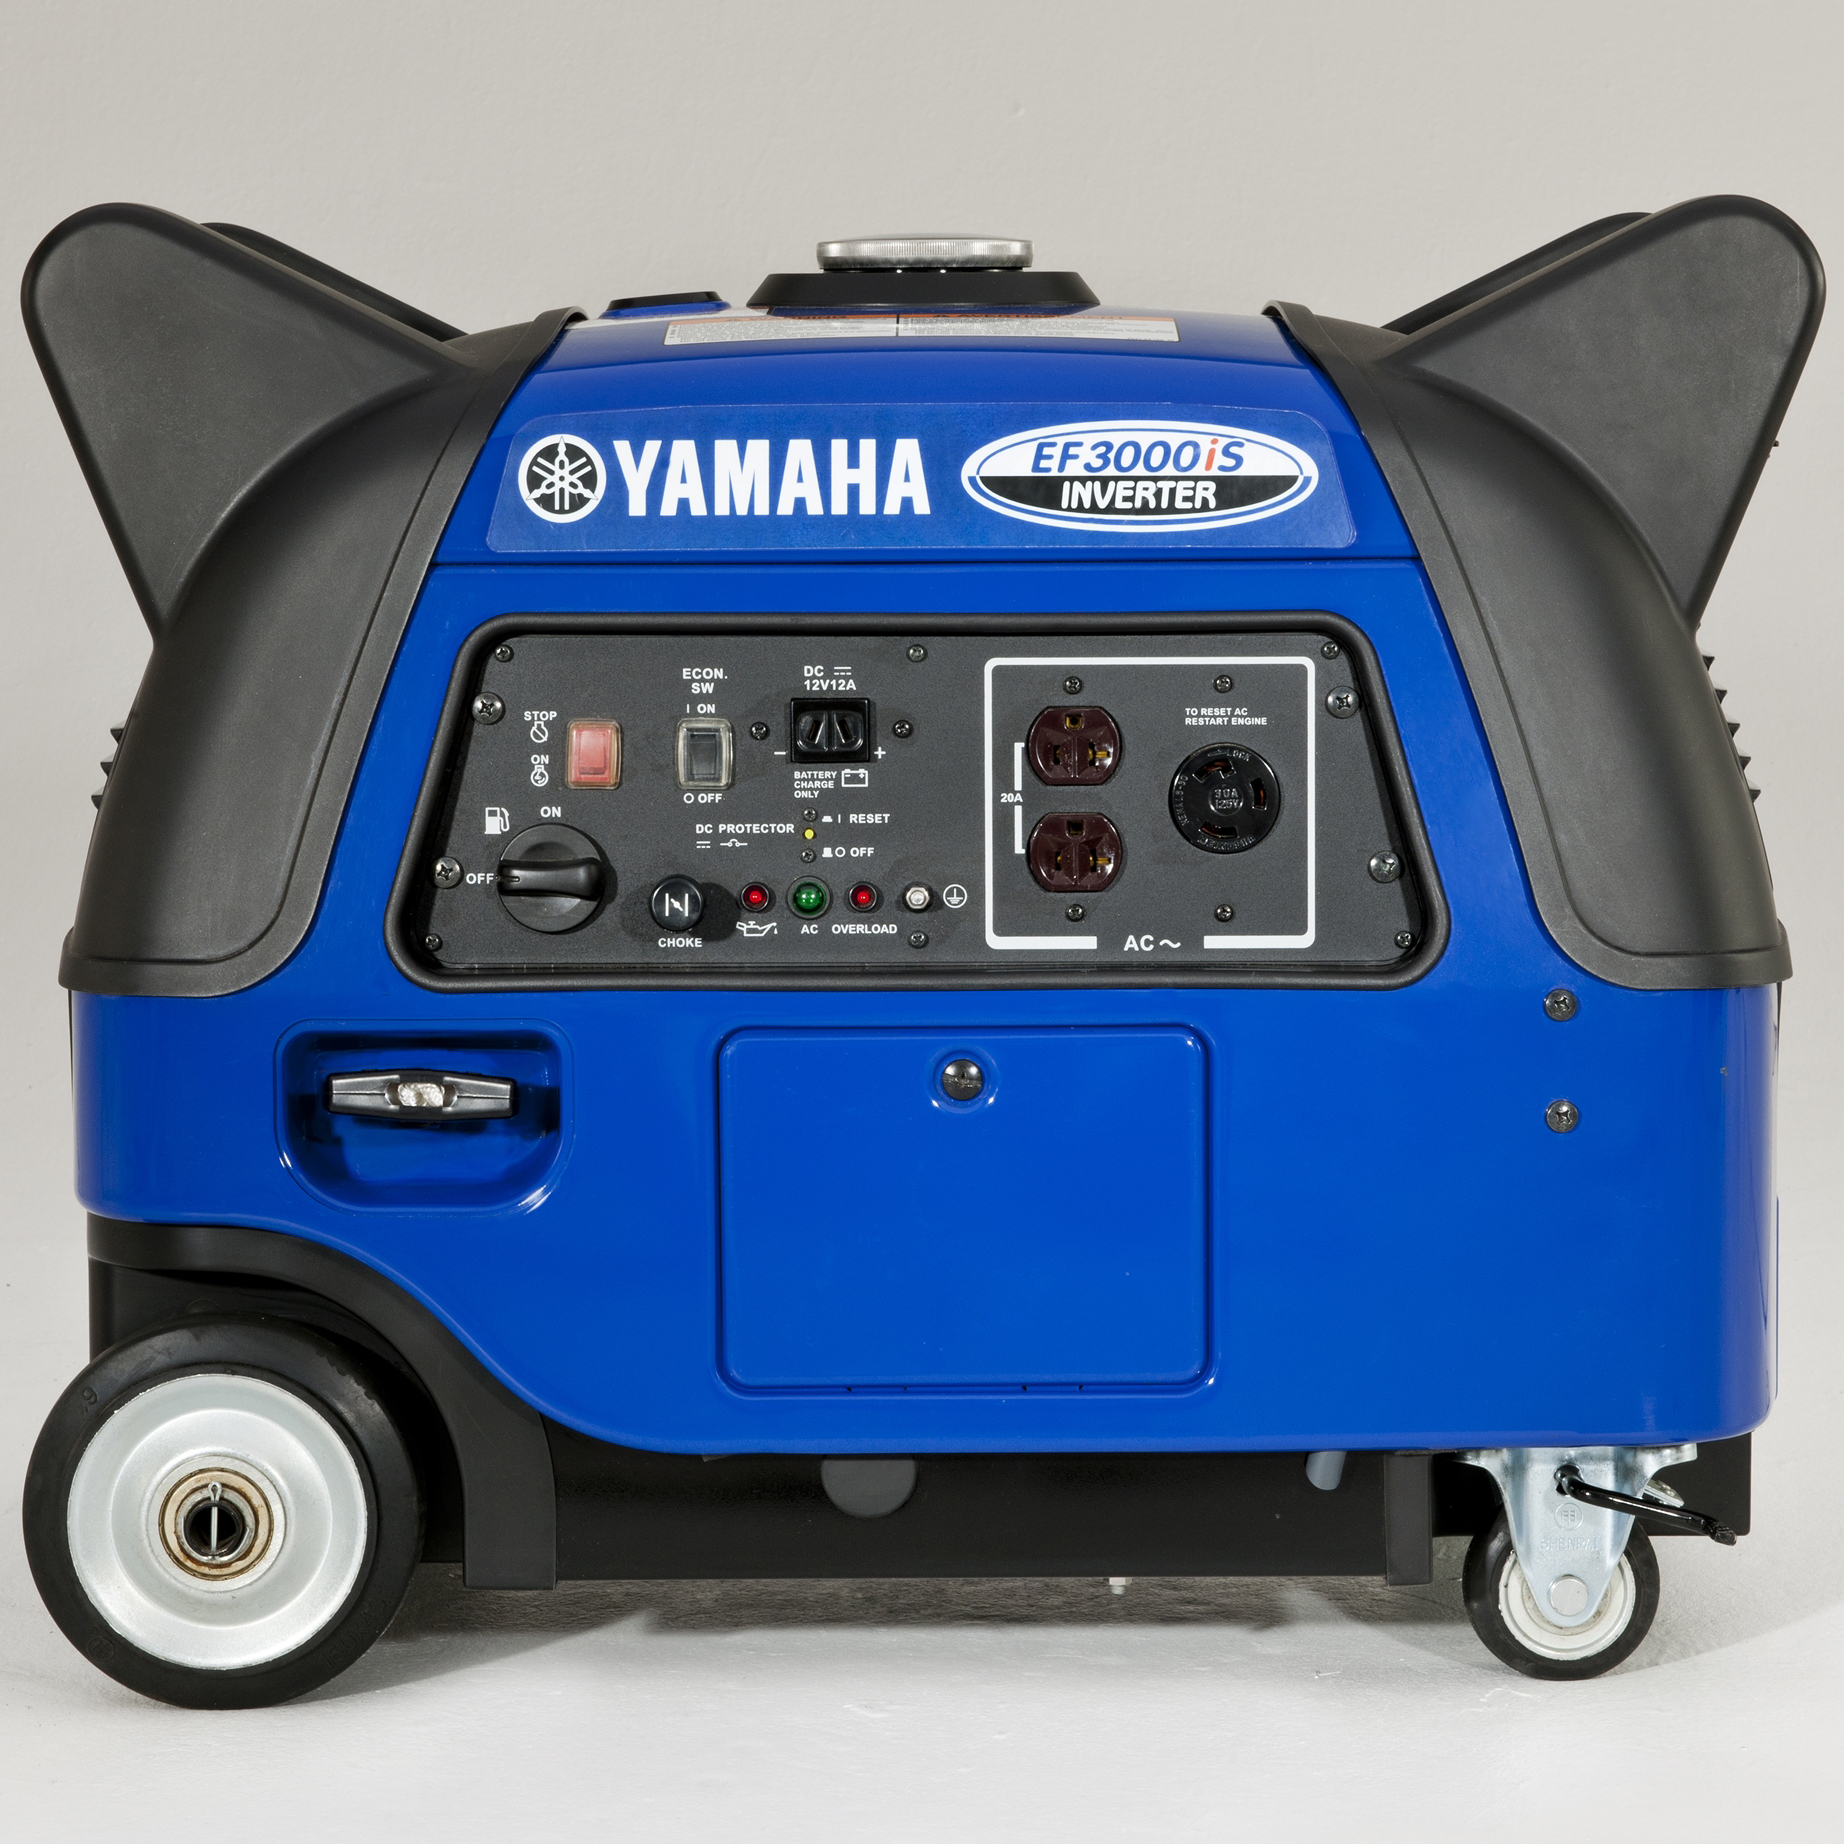 Yamaha EF3000iS 3,000 Watt Gas Powered Portable RV Power Inverter Generator